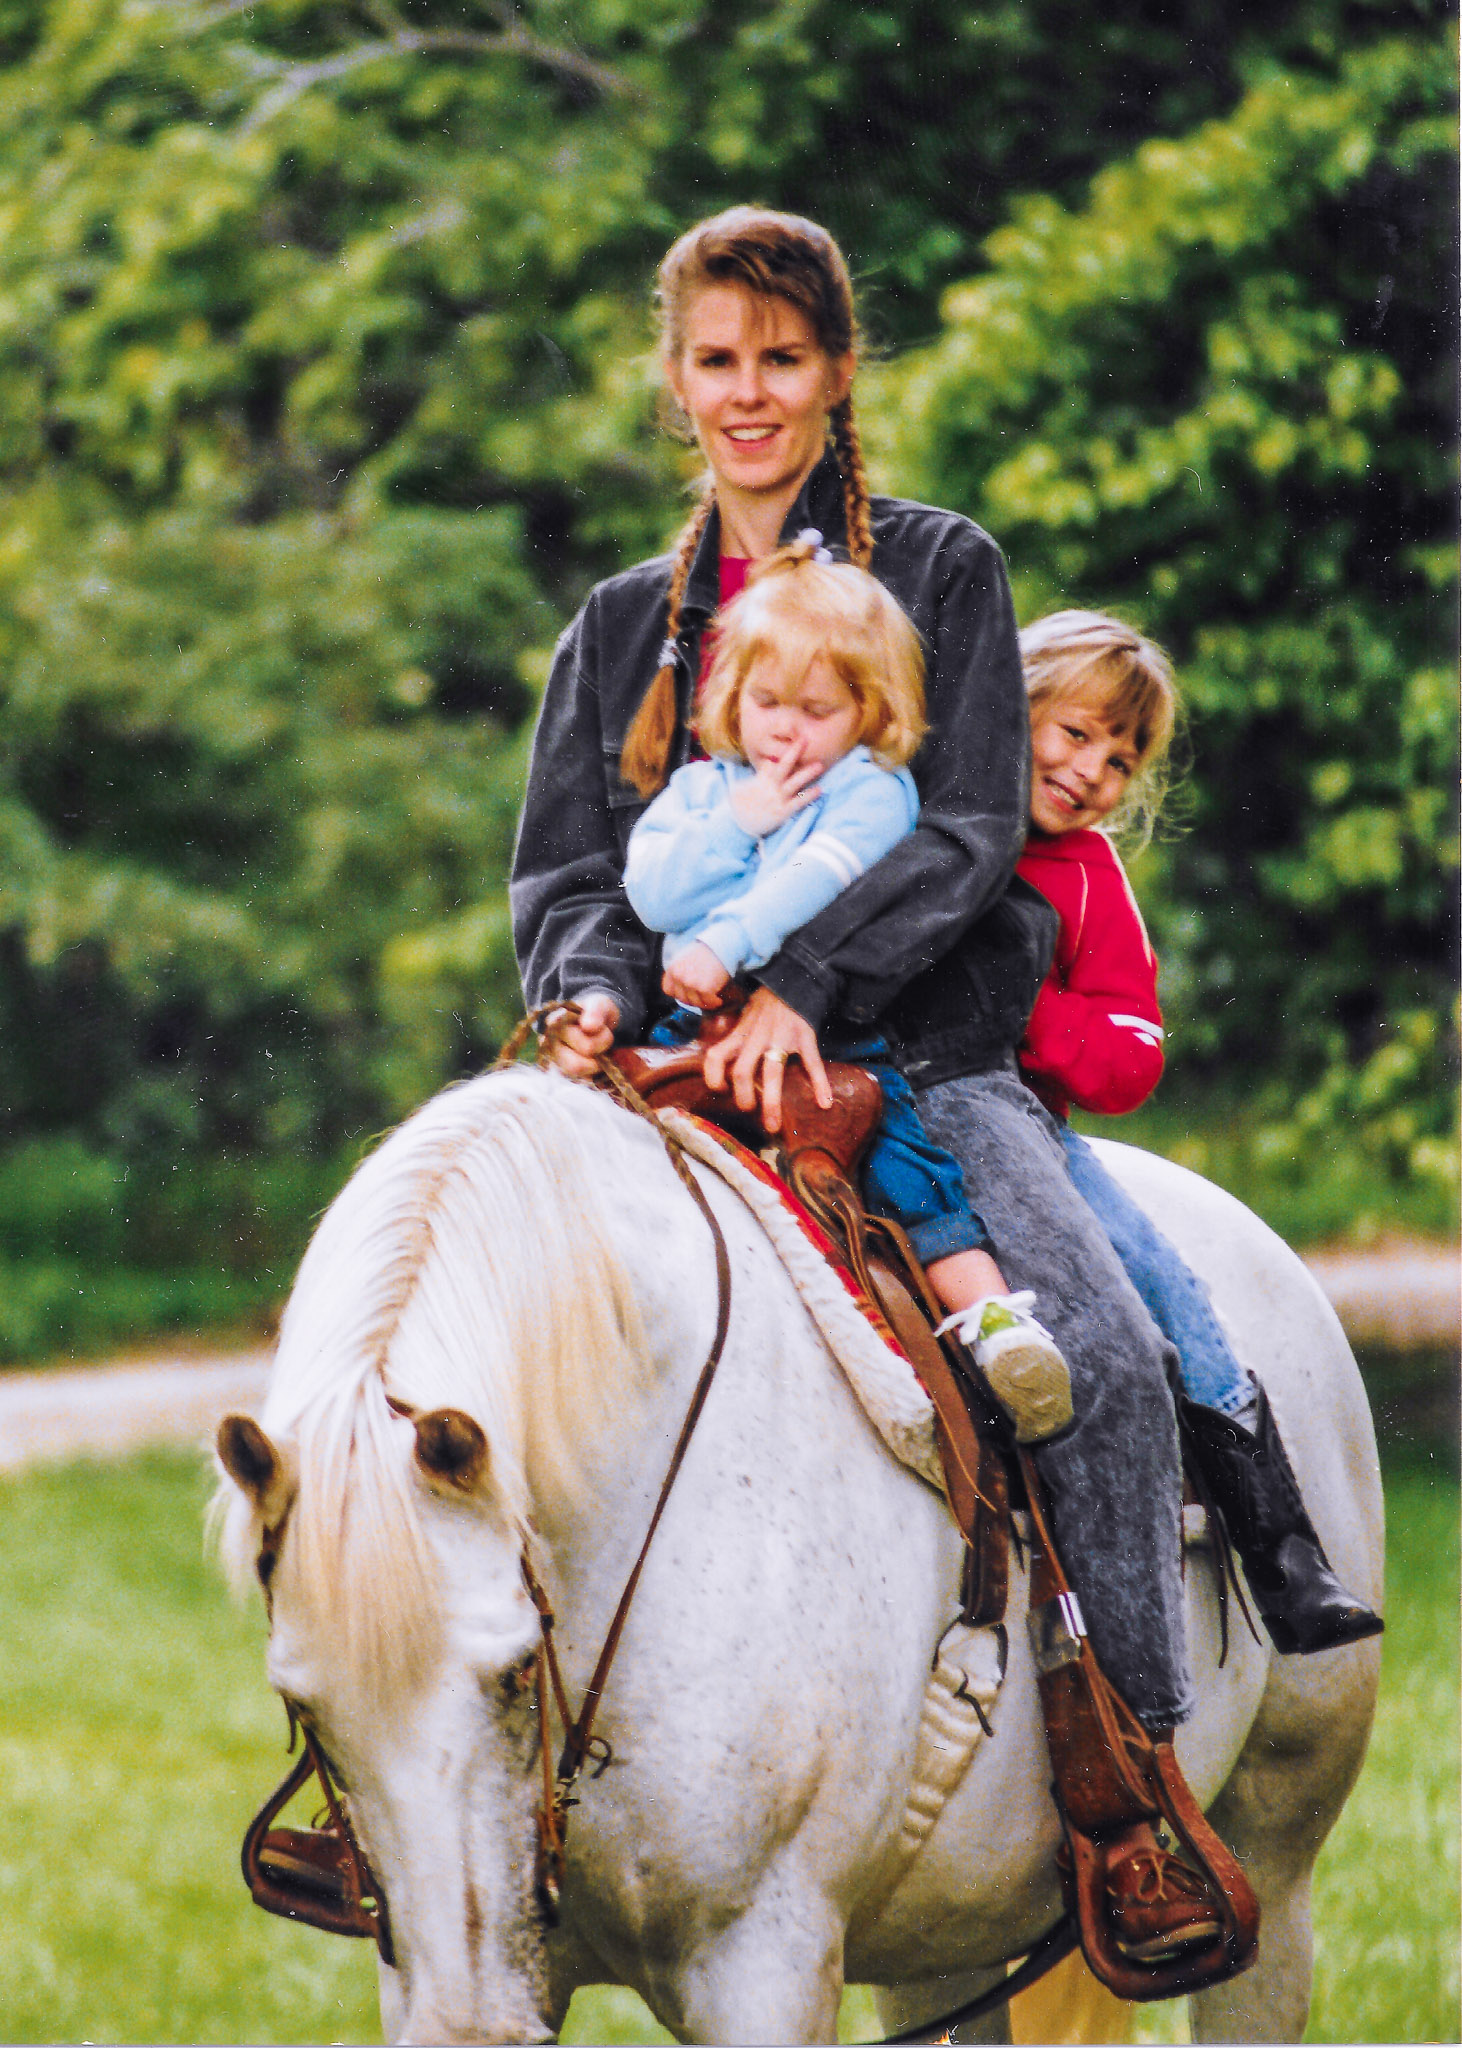 Melanie, with her young daughters, riding Polka.